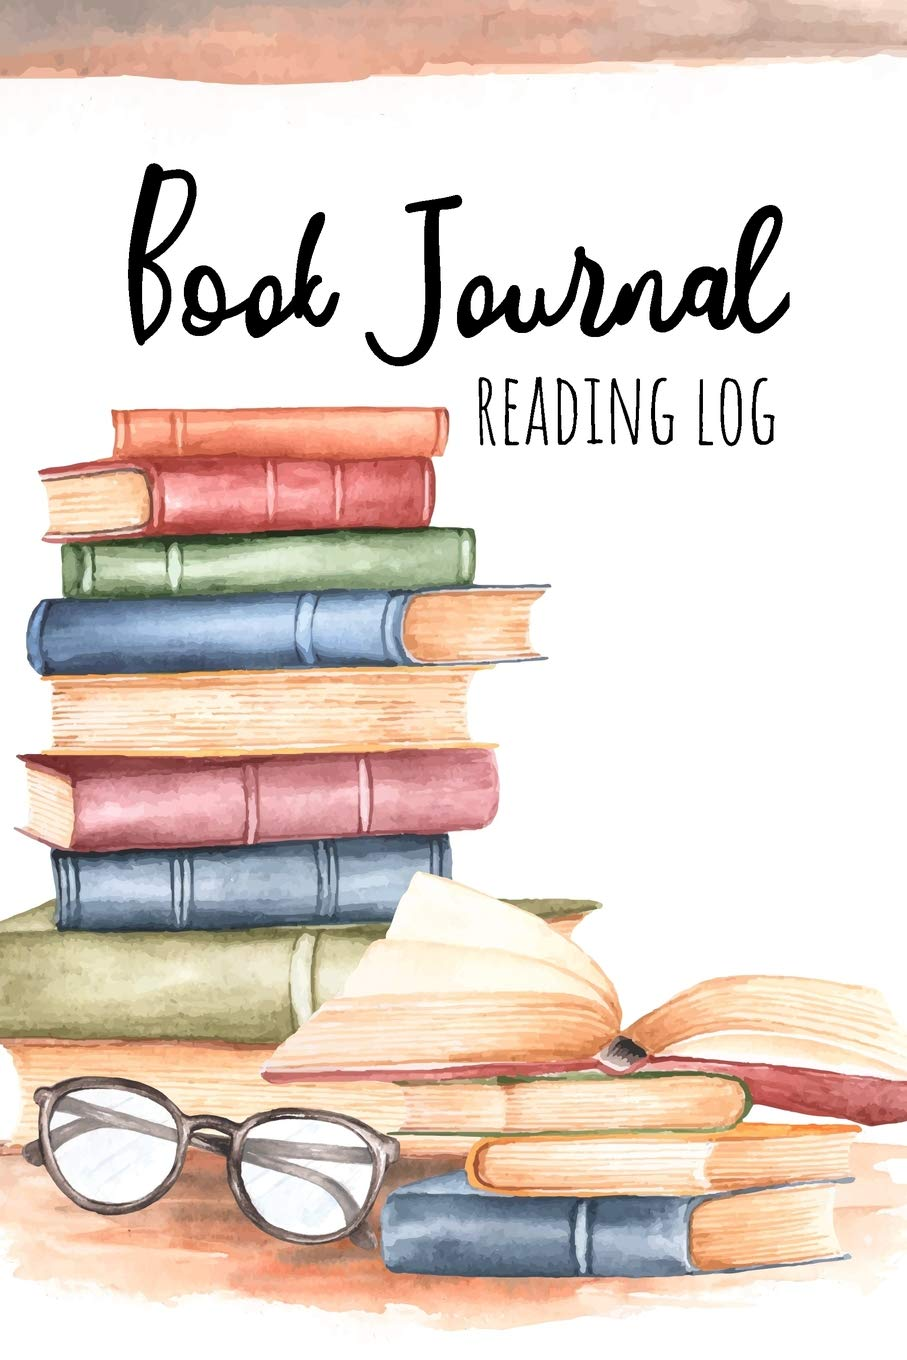 Amazon.com: Book journal | Reading log: Track all your ...